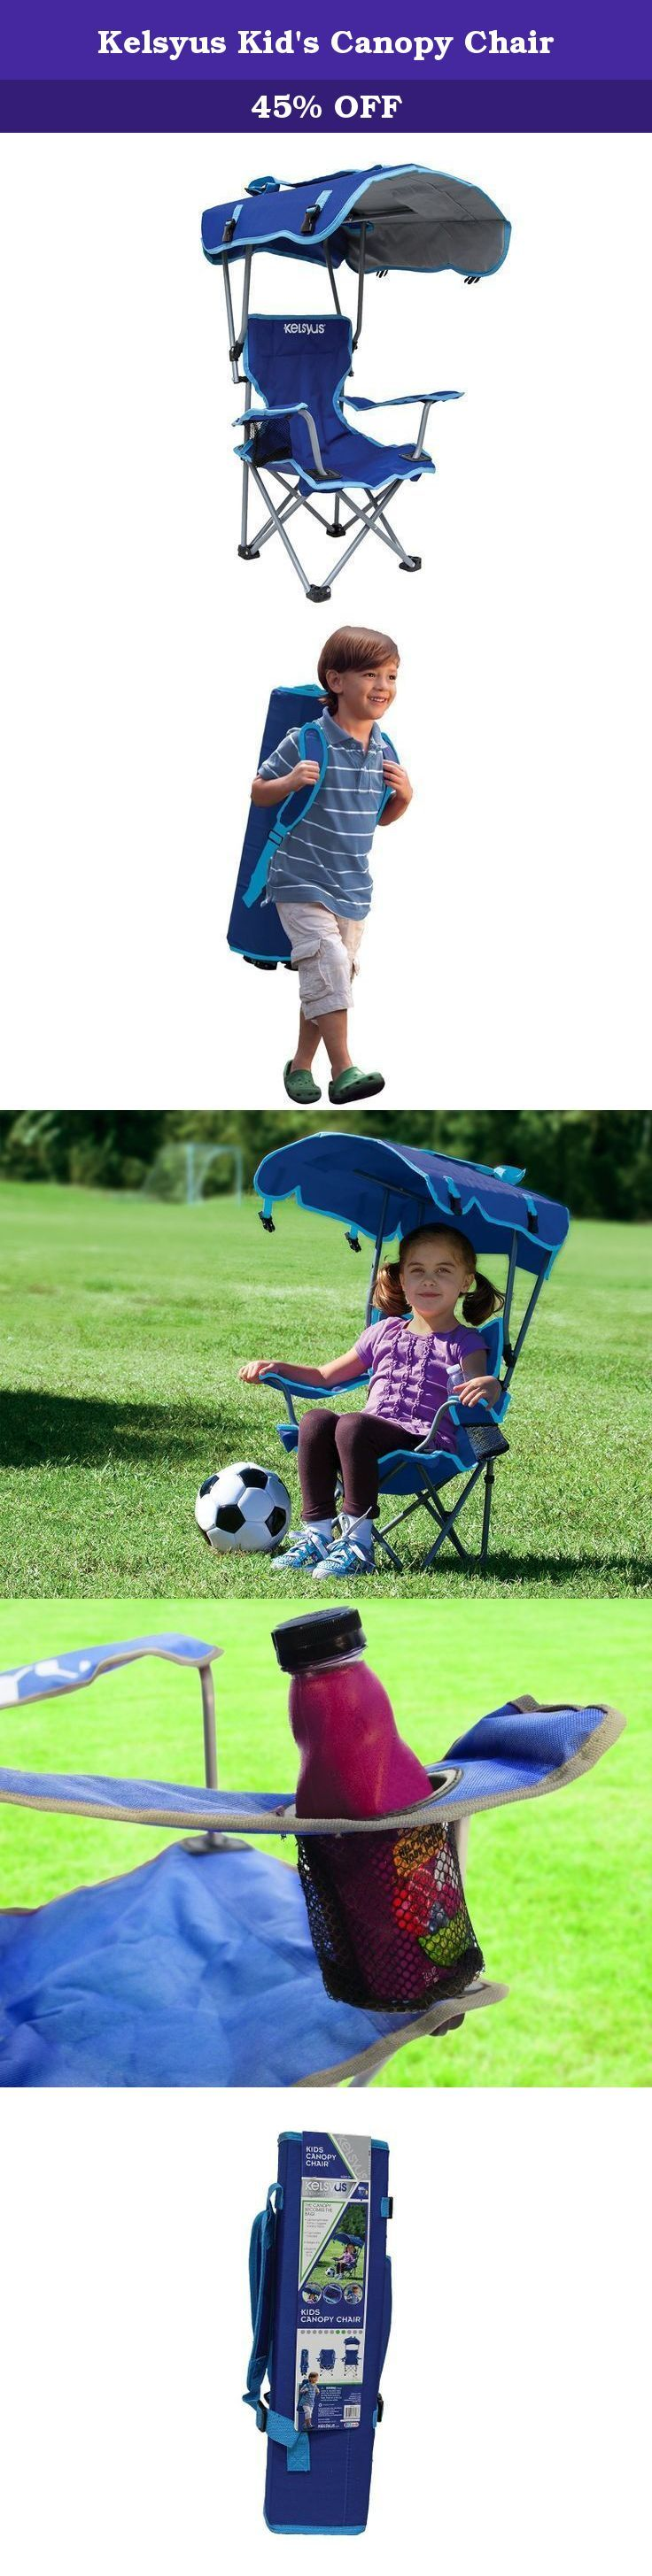 Kelsyus Kidu0027s Canopy Chair. Protect your little one from the elements with the Kelsyus Kidu0027s Canopy Chair. Parents love the adjustable sunshade witu2026  sc 1 st  Pinterest : kelsyus kids canopy chair - memphite.com